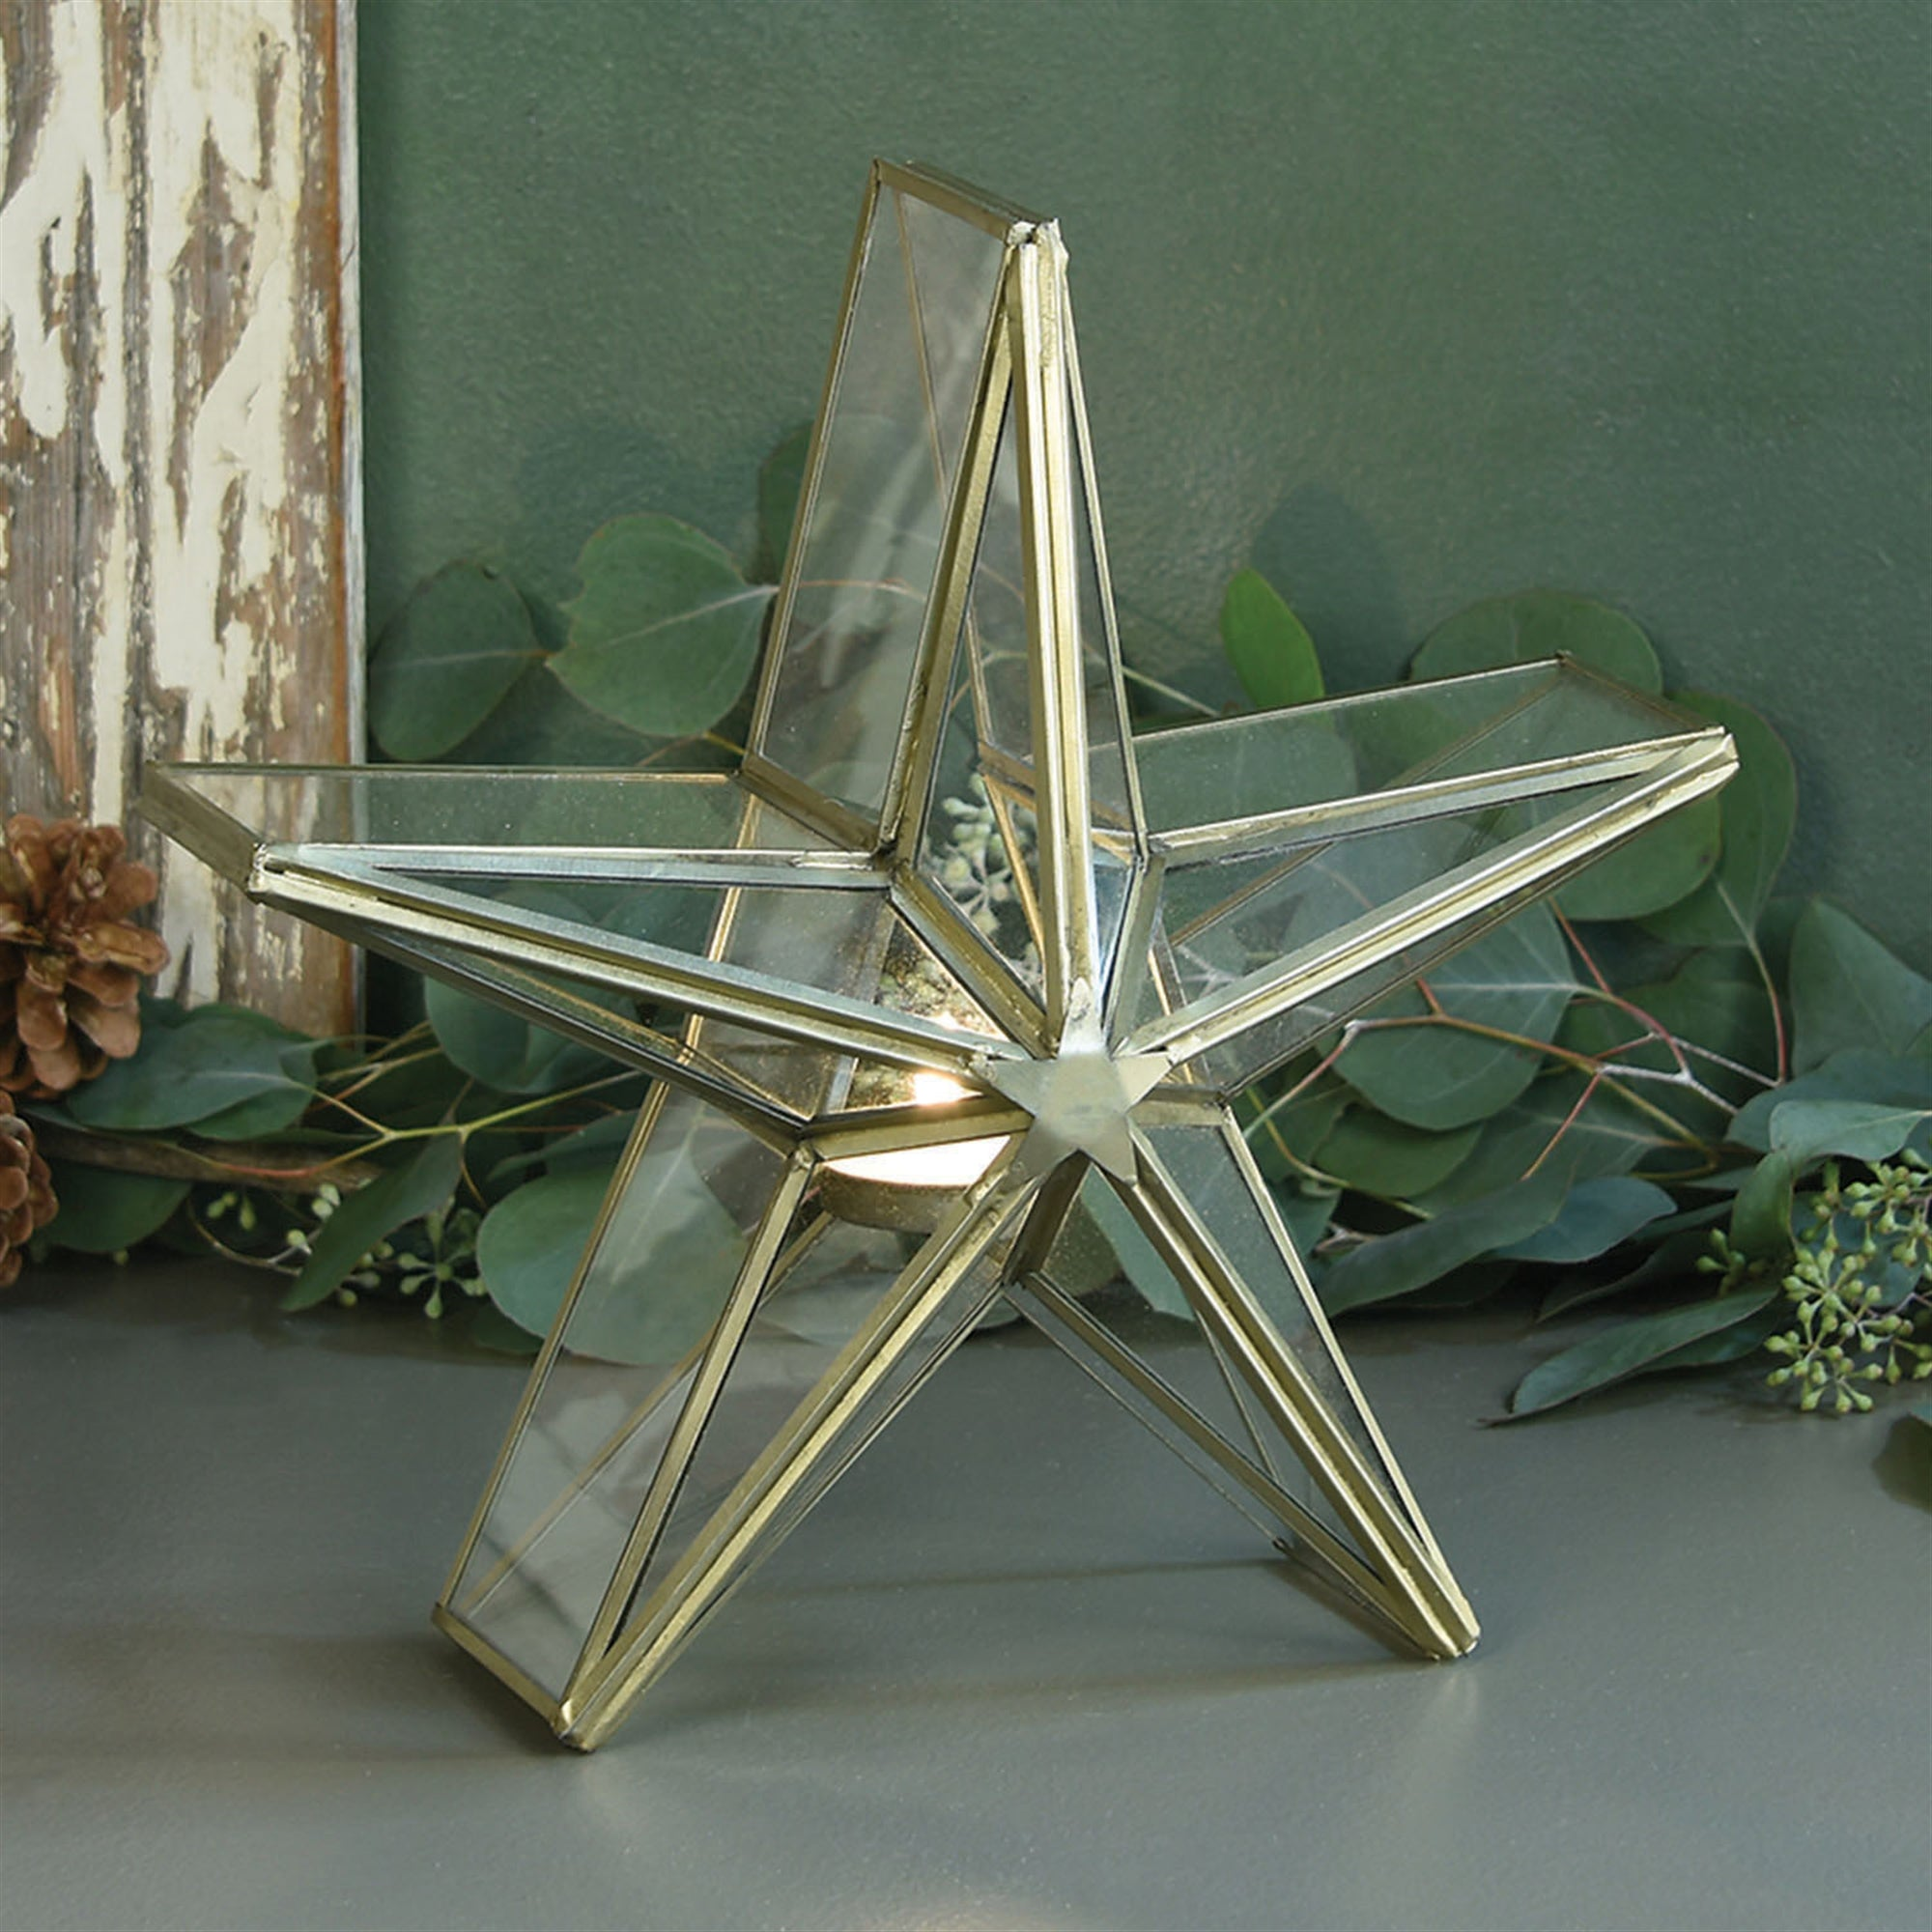 Glass Star Candle Holder - 2 styles